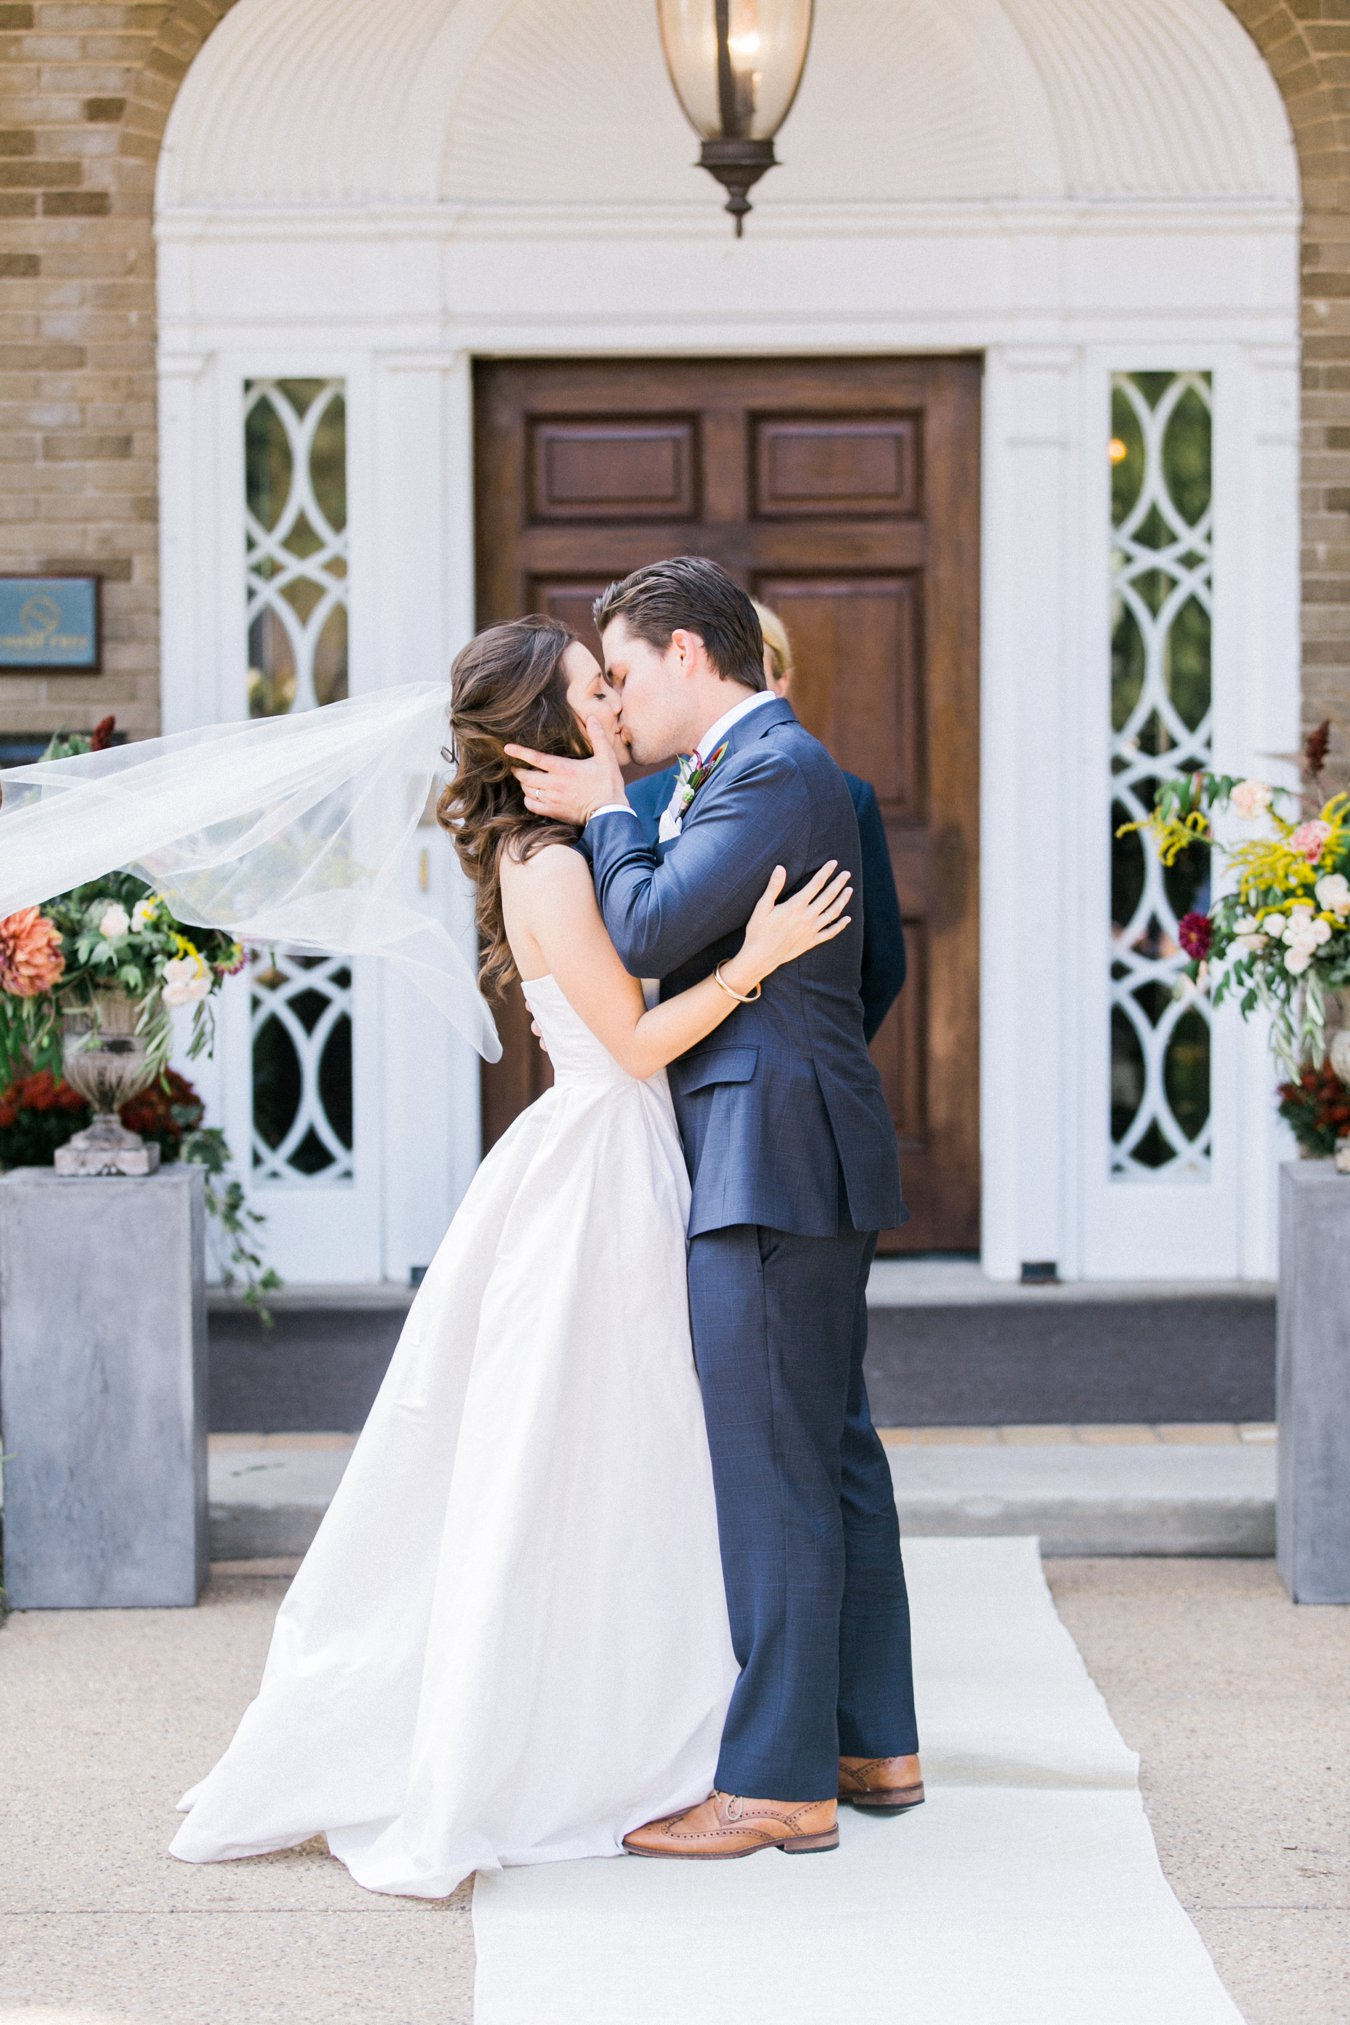 The Felt Mansion Holland Michigan Wedding Ceremony | Cory Weber Photography